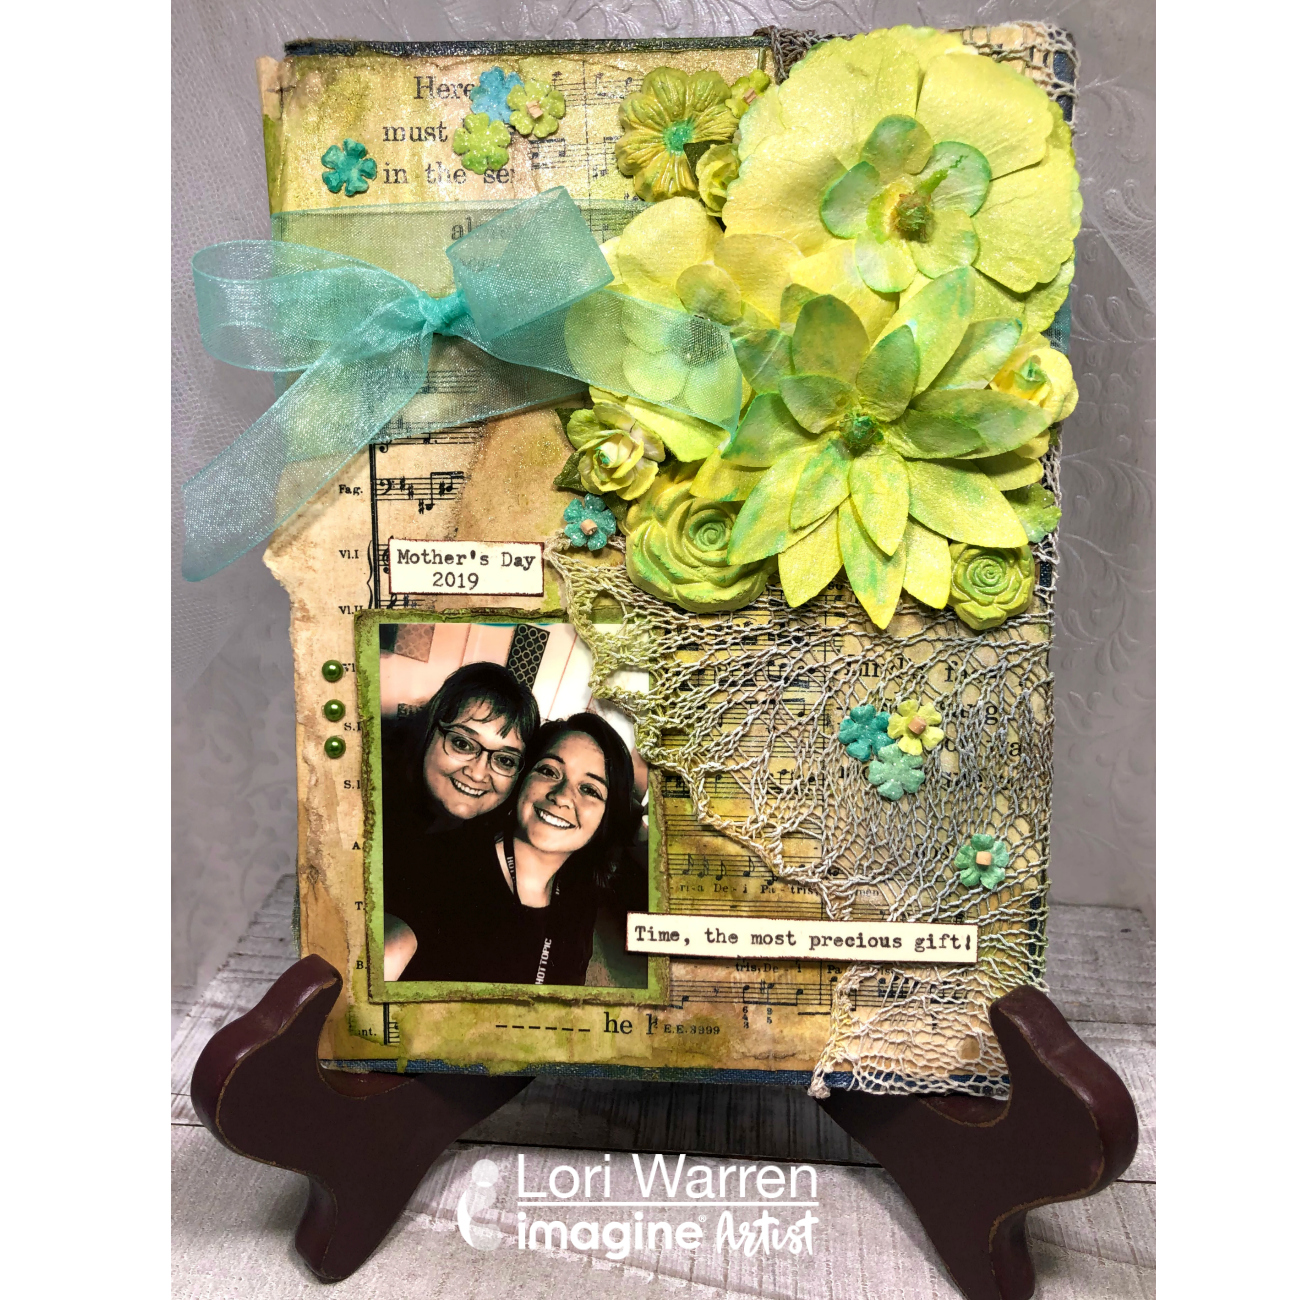 Handmade Mother's Day Memory board in bright greeens made by applying mixed media techniques to a book cover.